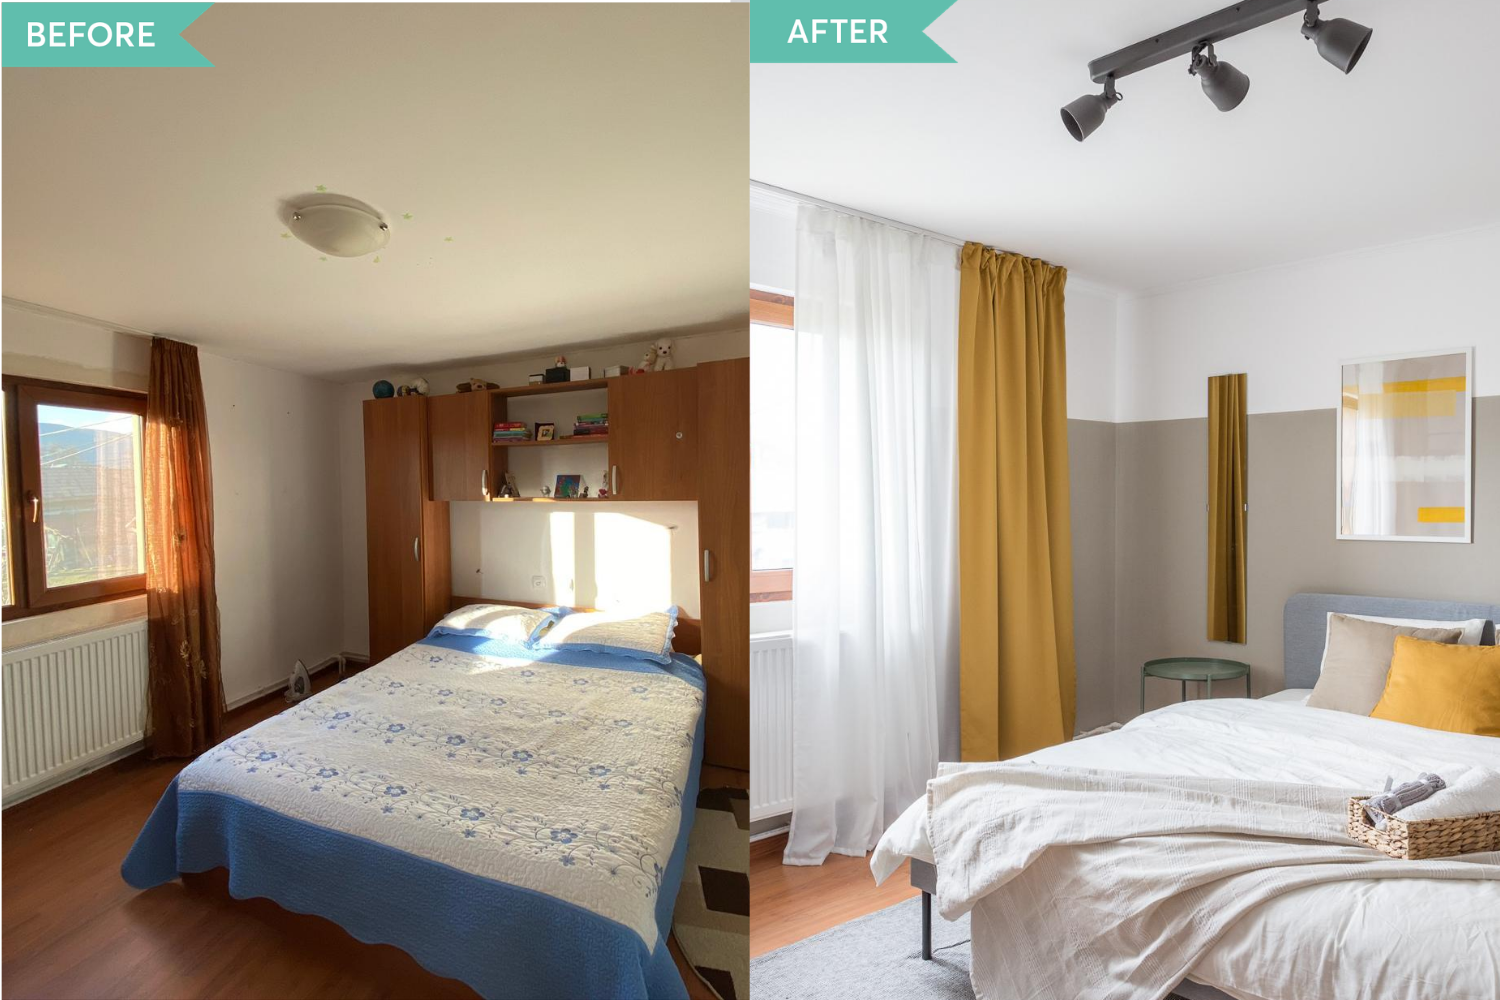 Zen Casa Comarnic - before and after - amenajare AfterDeco (8)